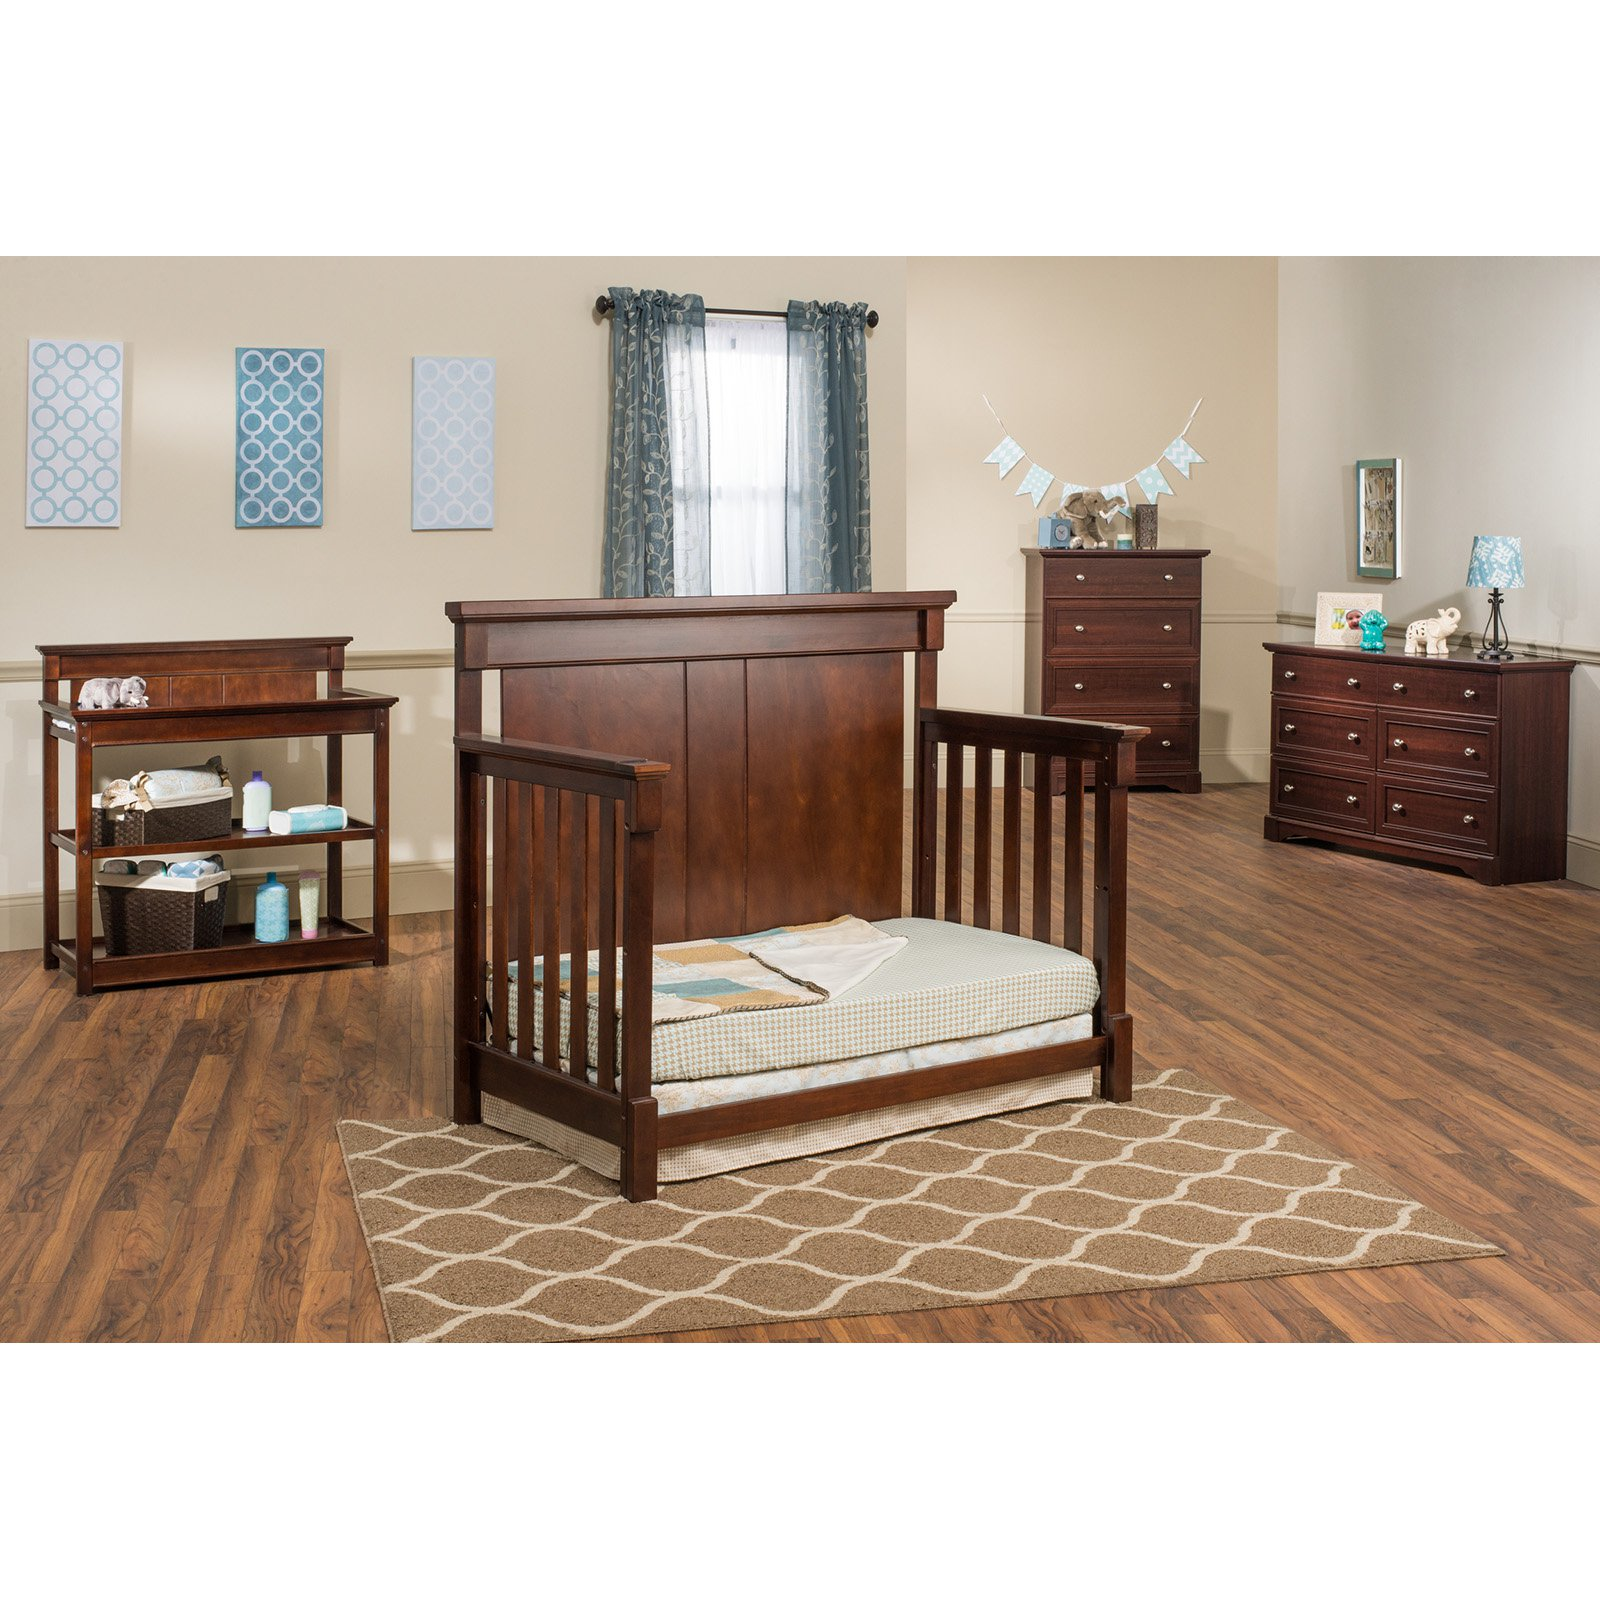 daybed as living room couch everly 4 in 1 convertible crib w